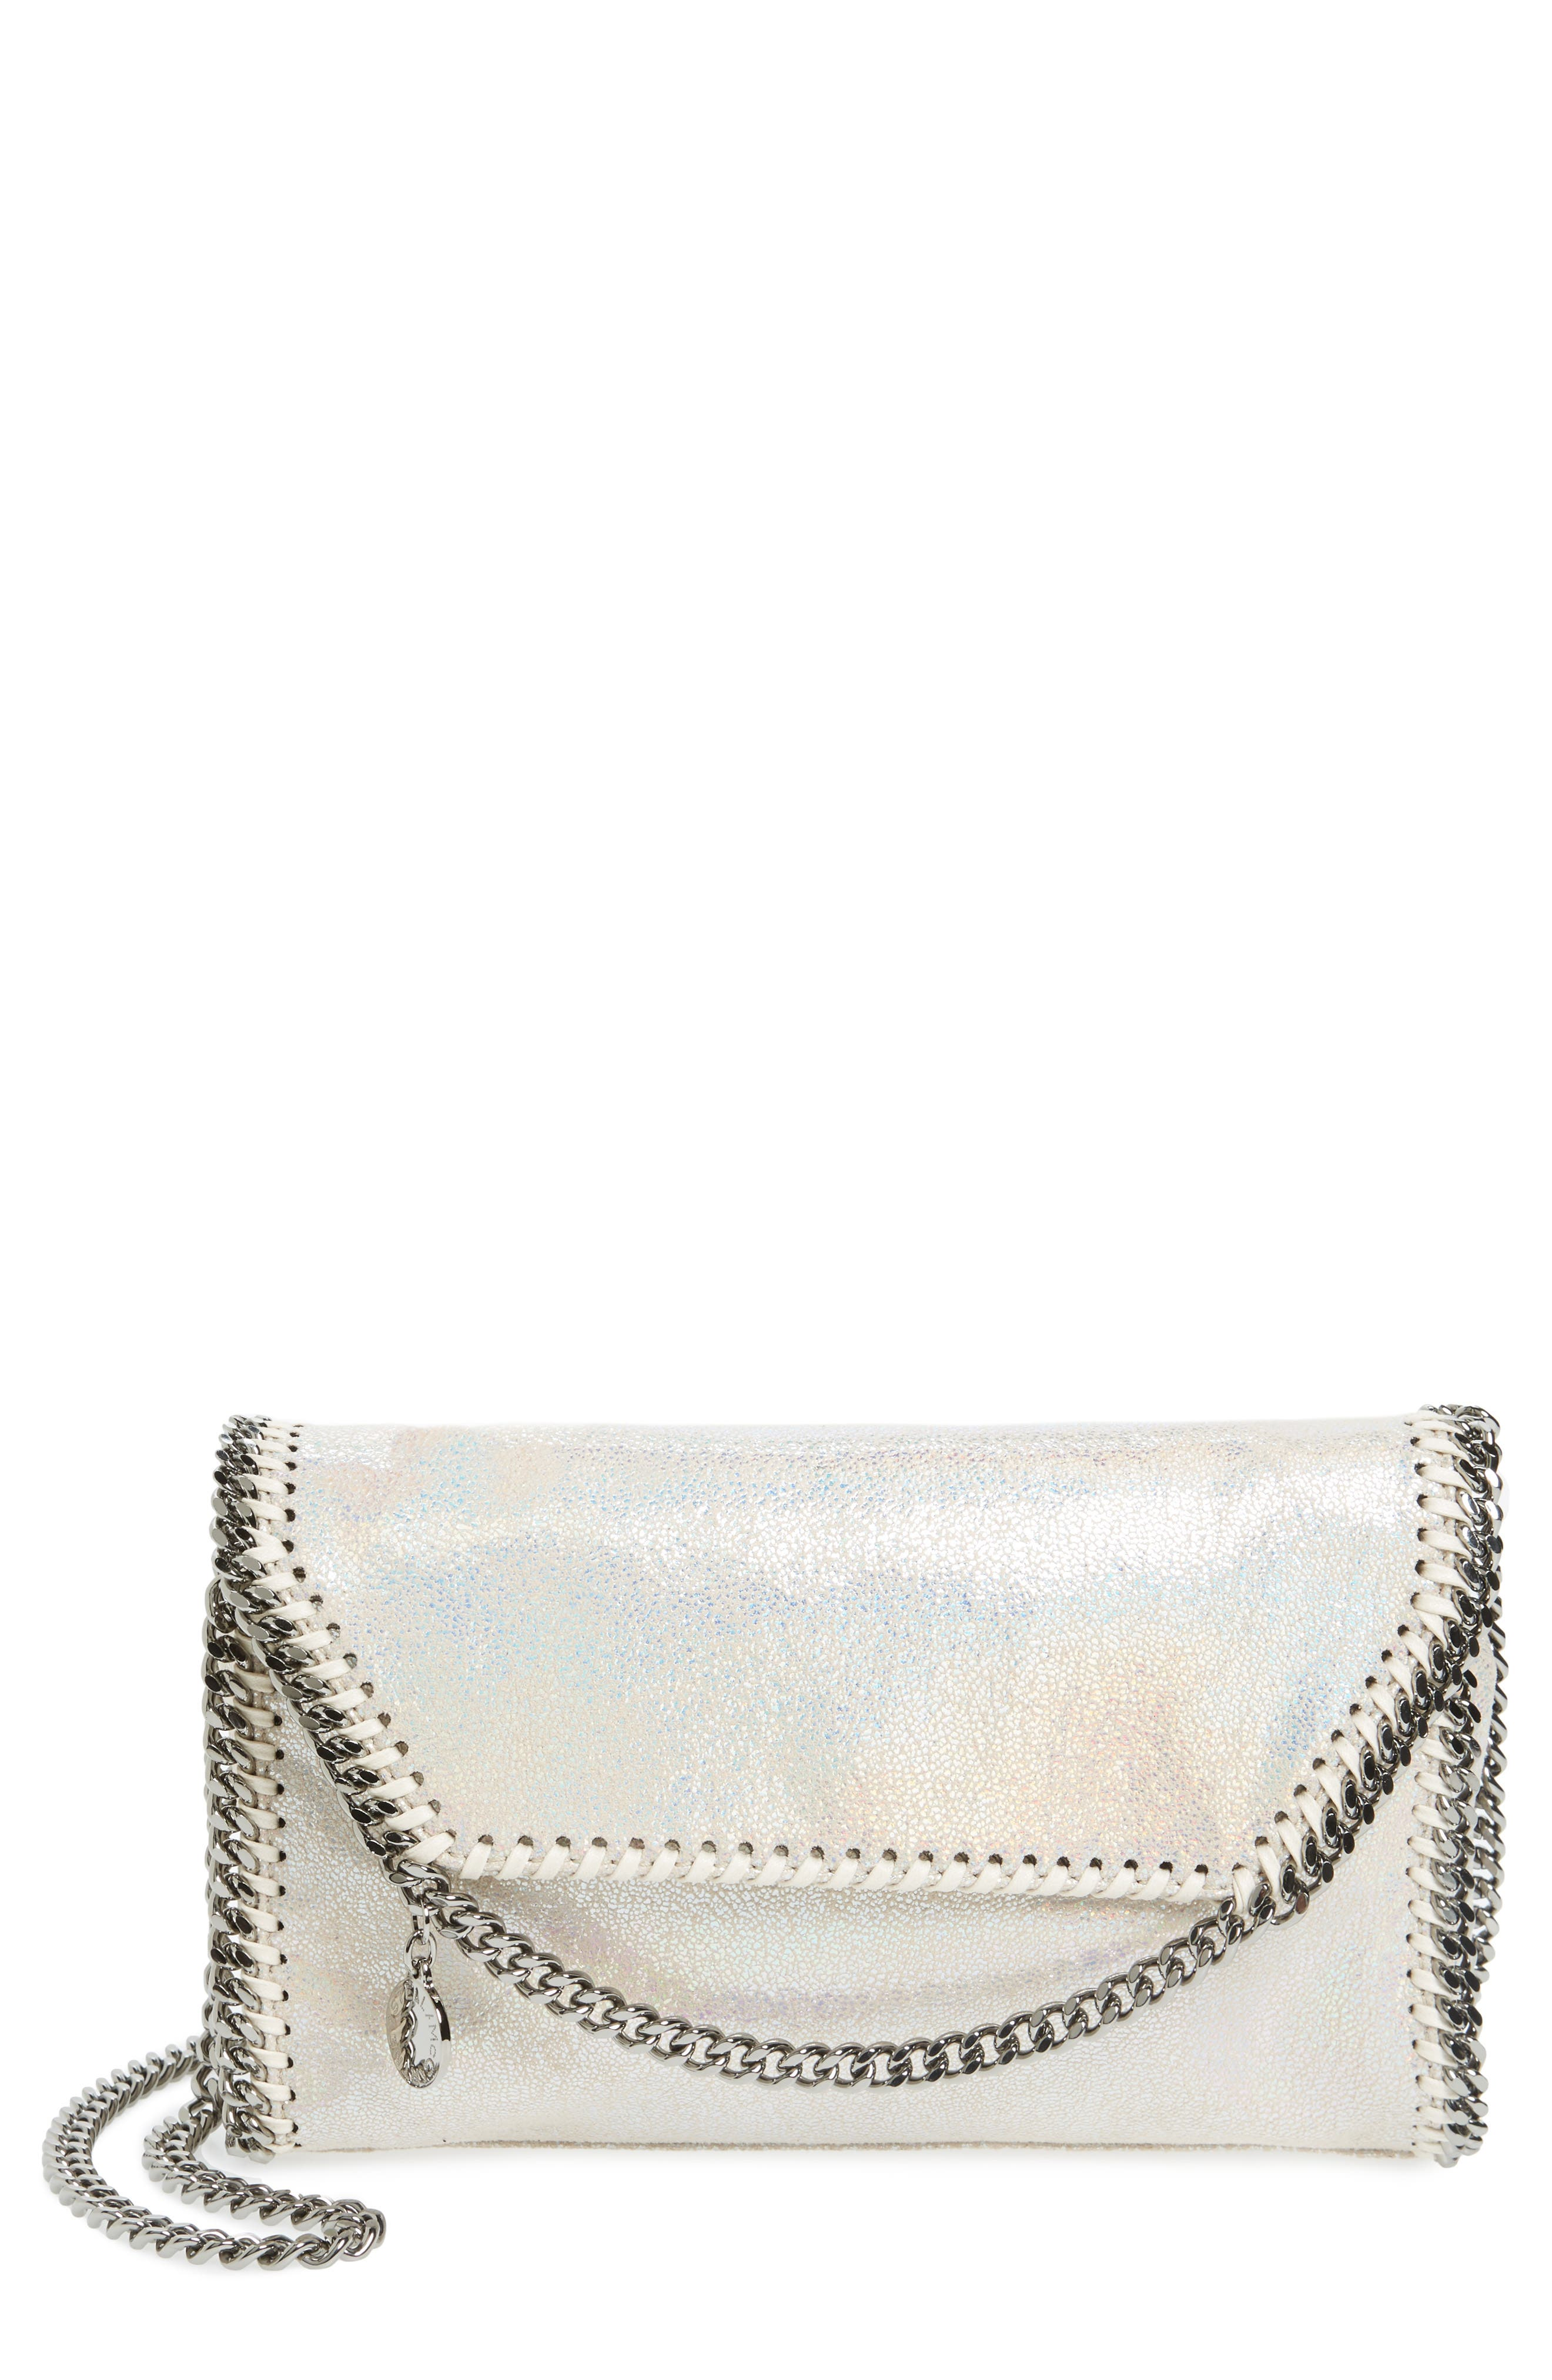 Main Image - Stella McCartney Falabella Shaggy Deer Faux Leather Crossbody Bag